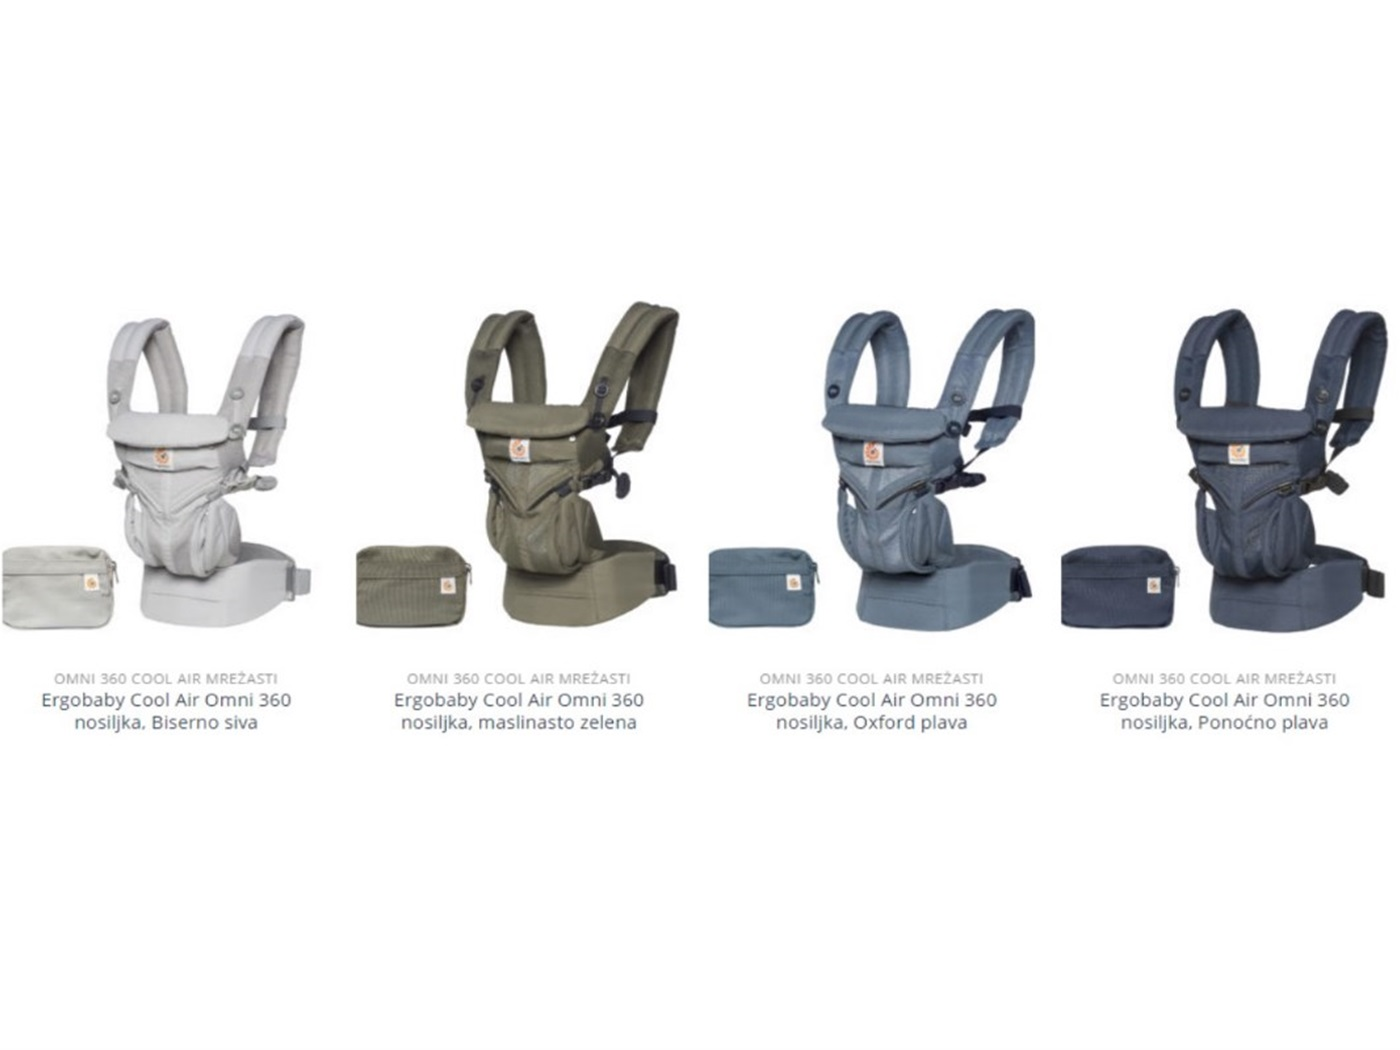 Ergobaby   cool   air   omni   3 6 0  nosiljka